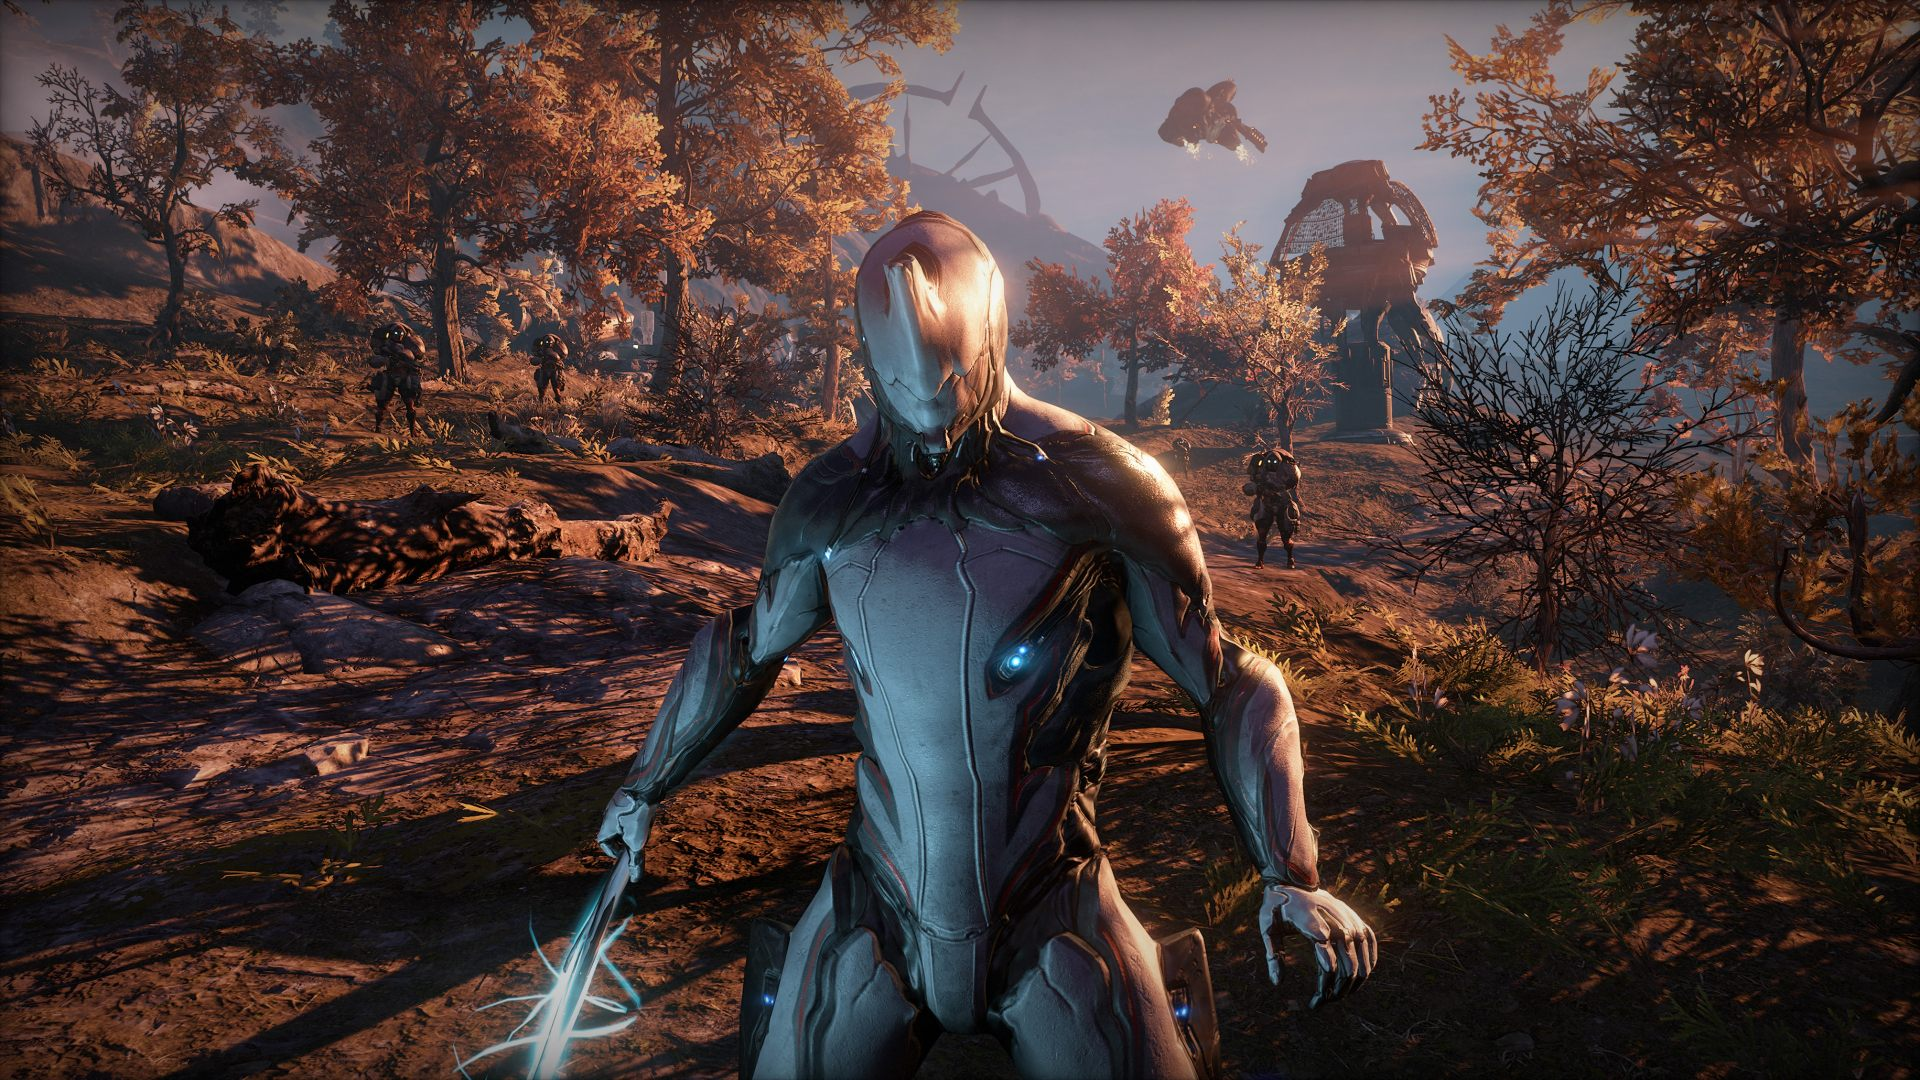 en_US_Warframe_PS5Reveal_PS5Comparison_3840x2160_L.jpg